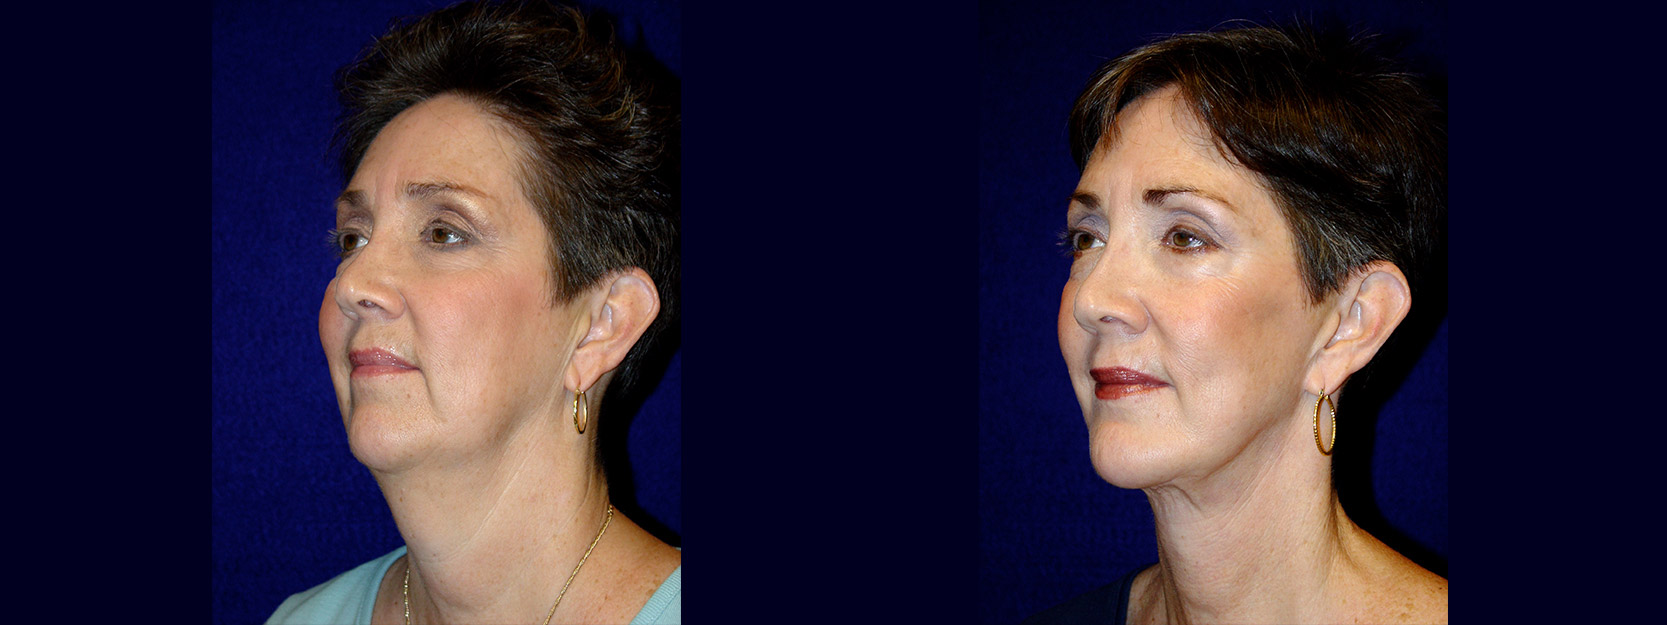 Left 3/4 View - Facelift & Chin Implant